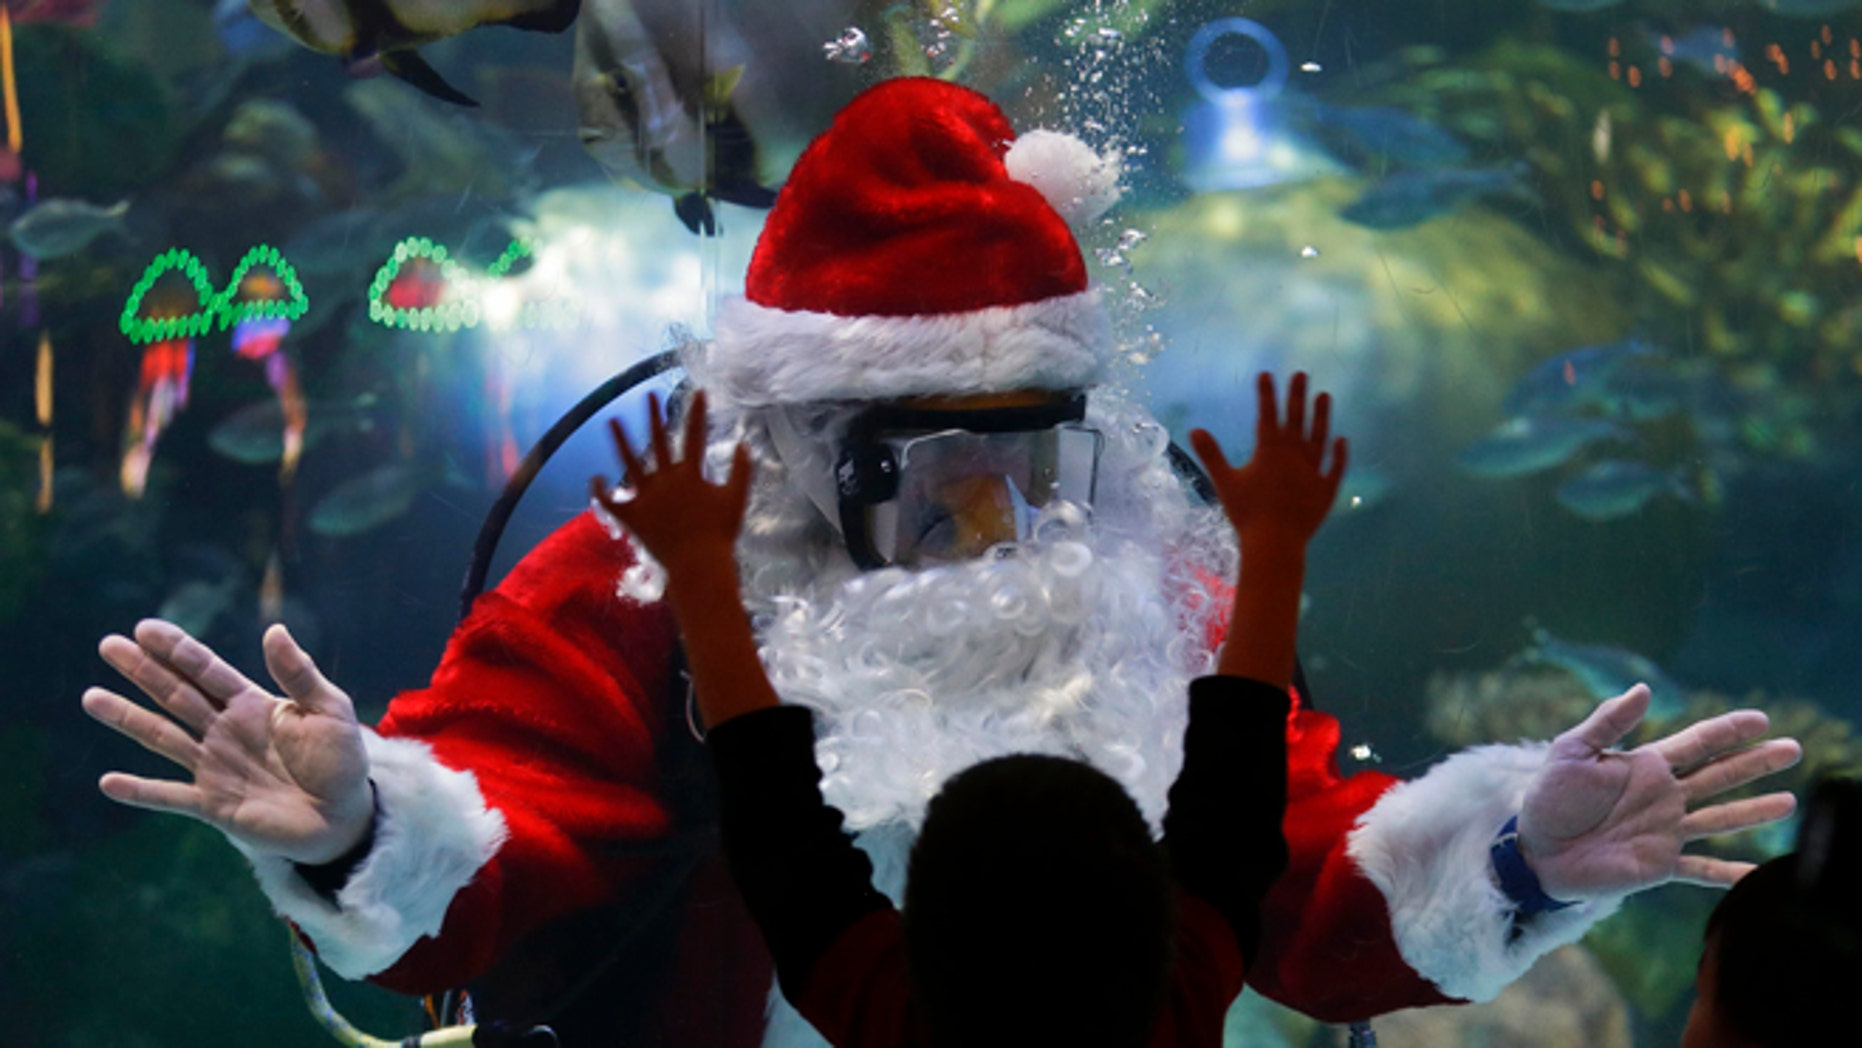 Jerry Cowley, aquatic safety manager at the Silverton Hotel-Casino interacts with children as an underwater Santa Claus, at the casino's aquarium in Las Vegas.